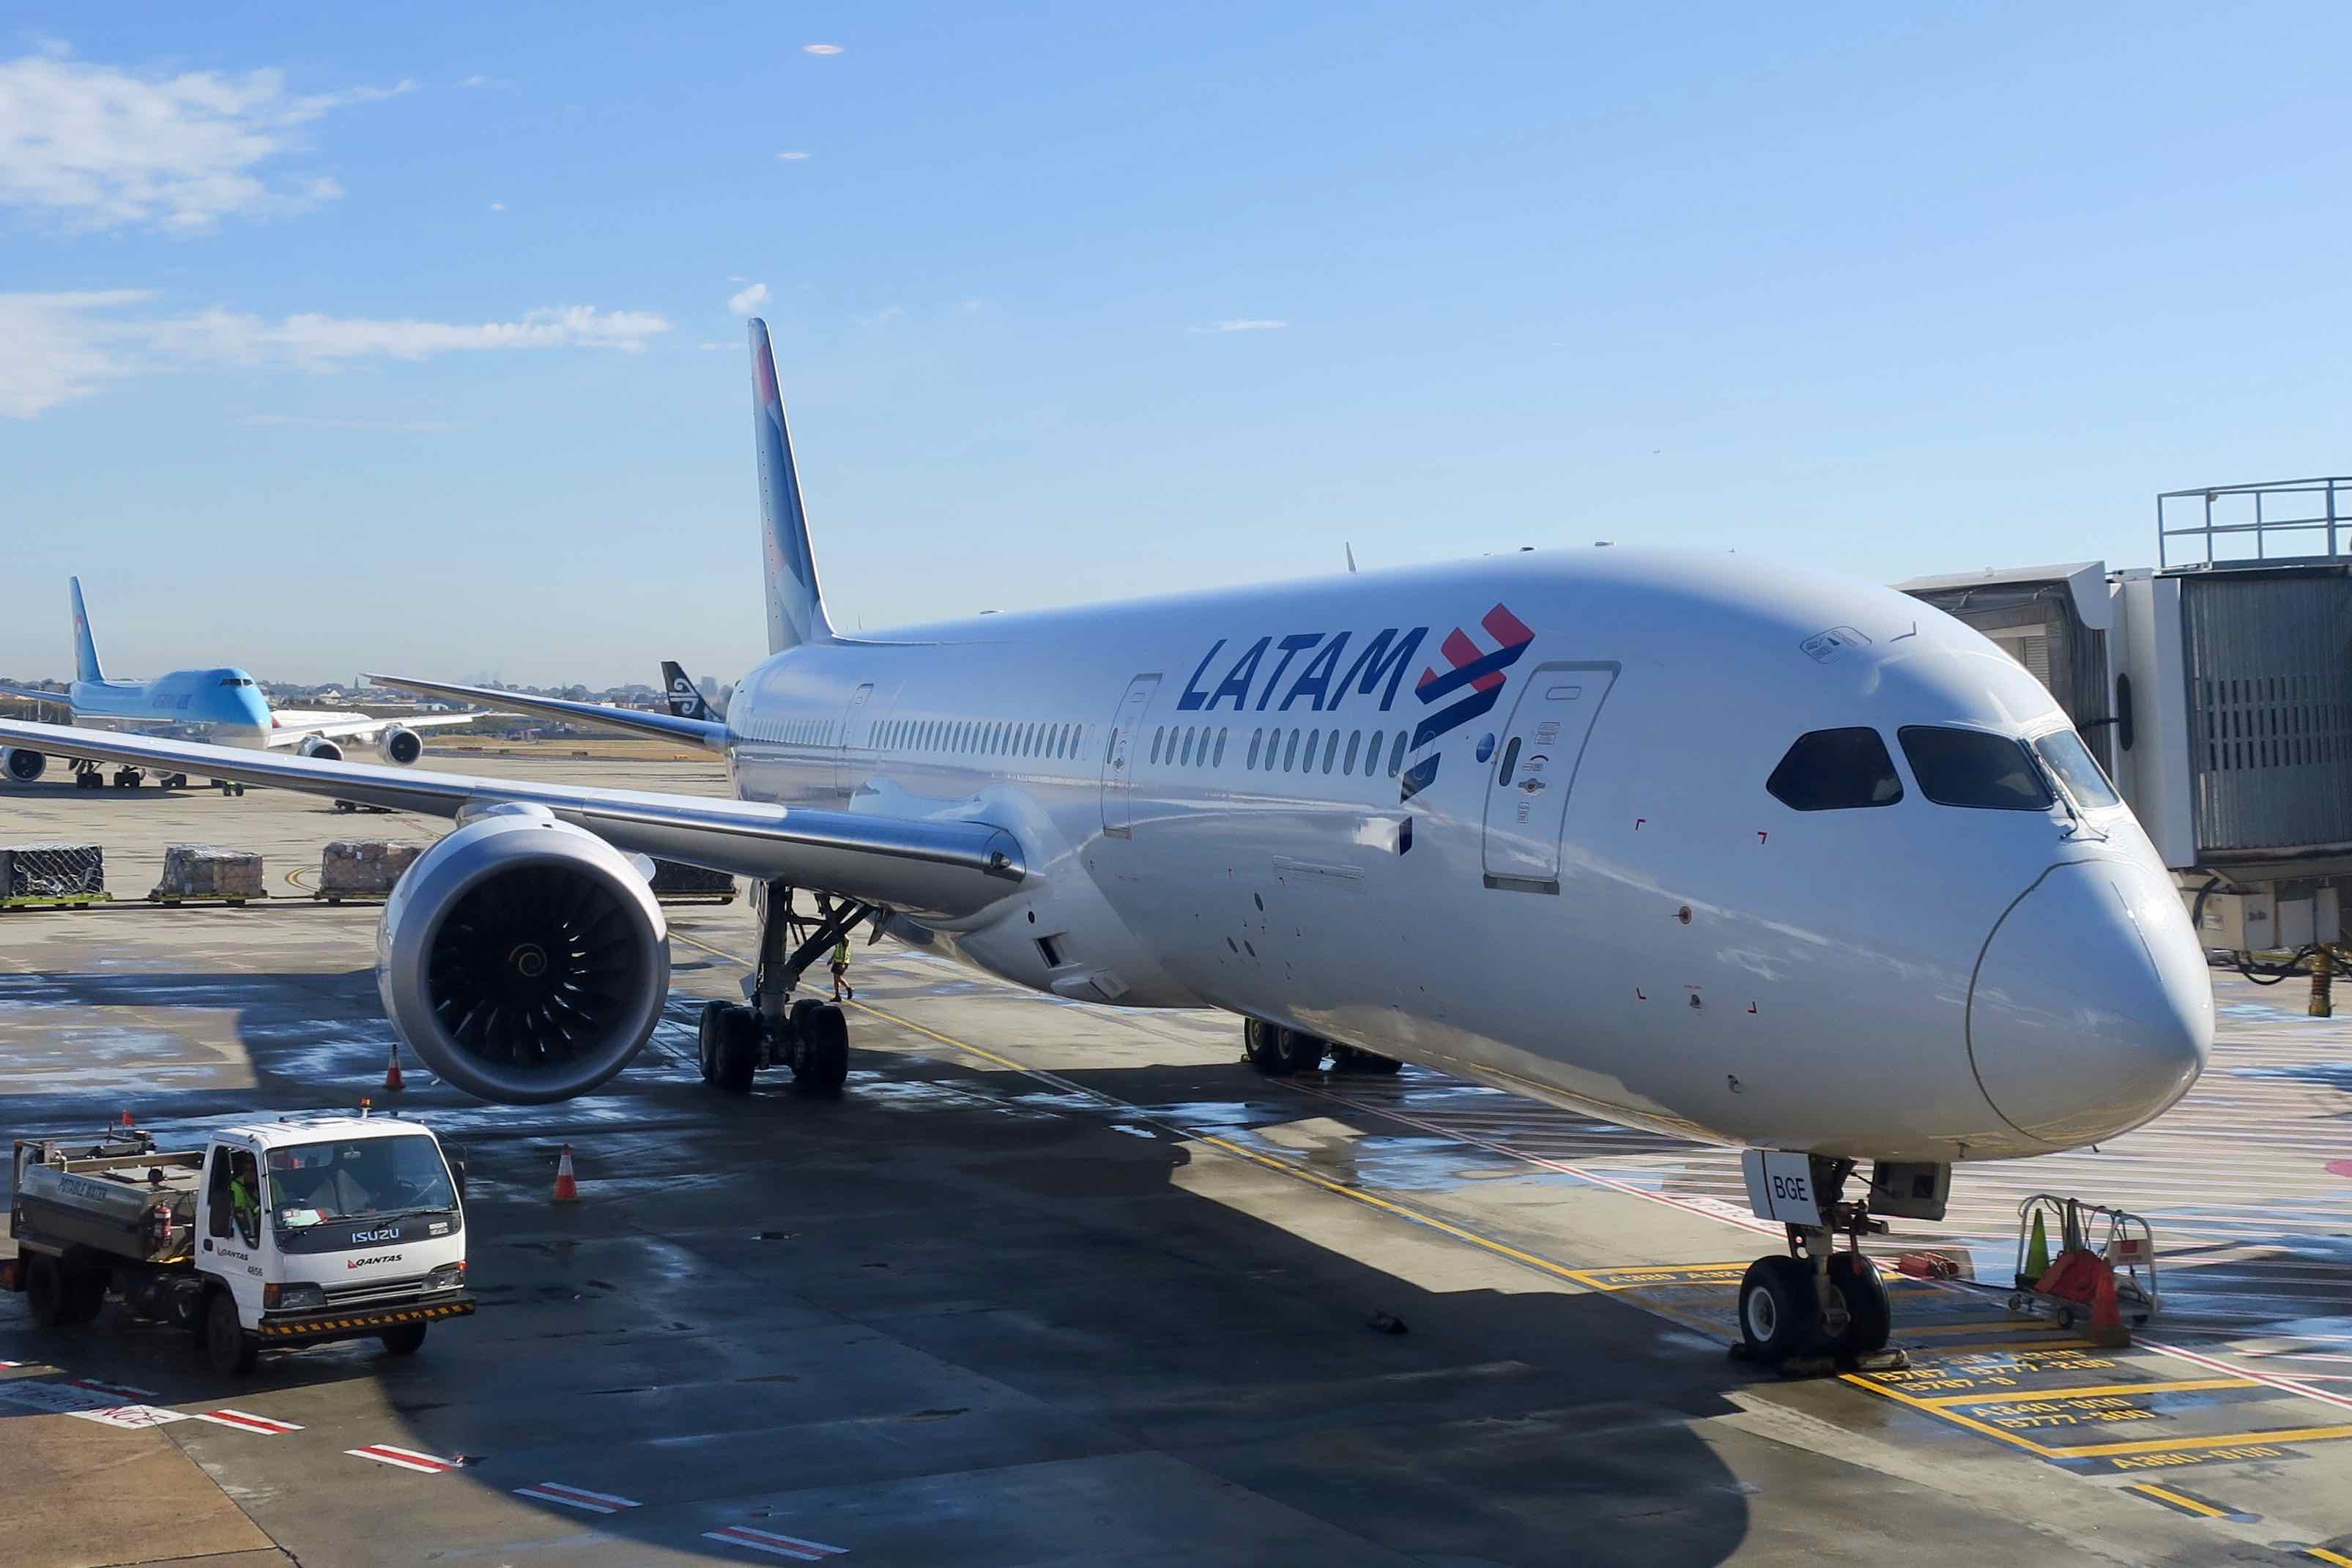 LATAM Boeing 787 Dreamliner at Sydney Airport